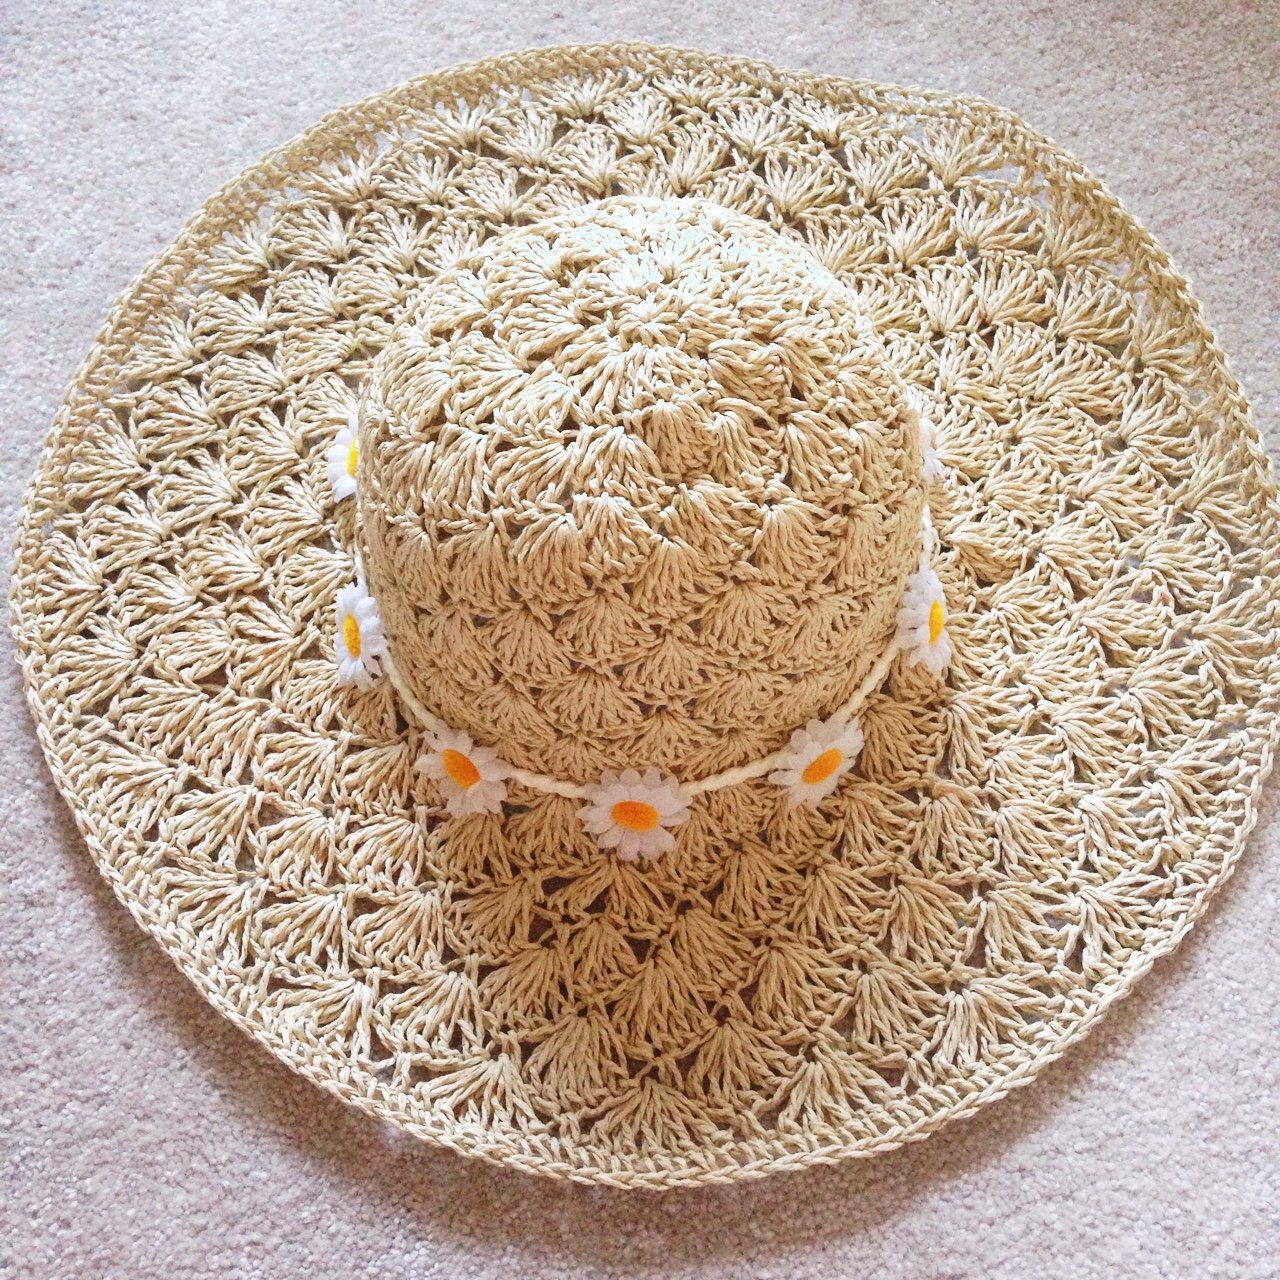 Vintage sunhat with daisies 🌸 99895fd112f8